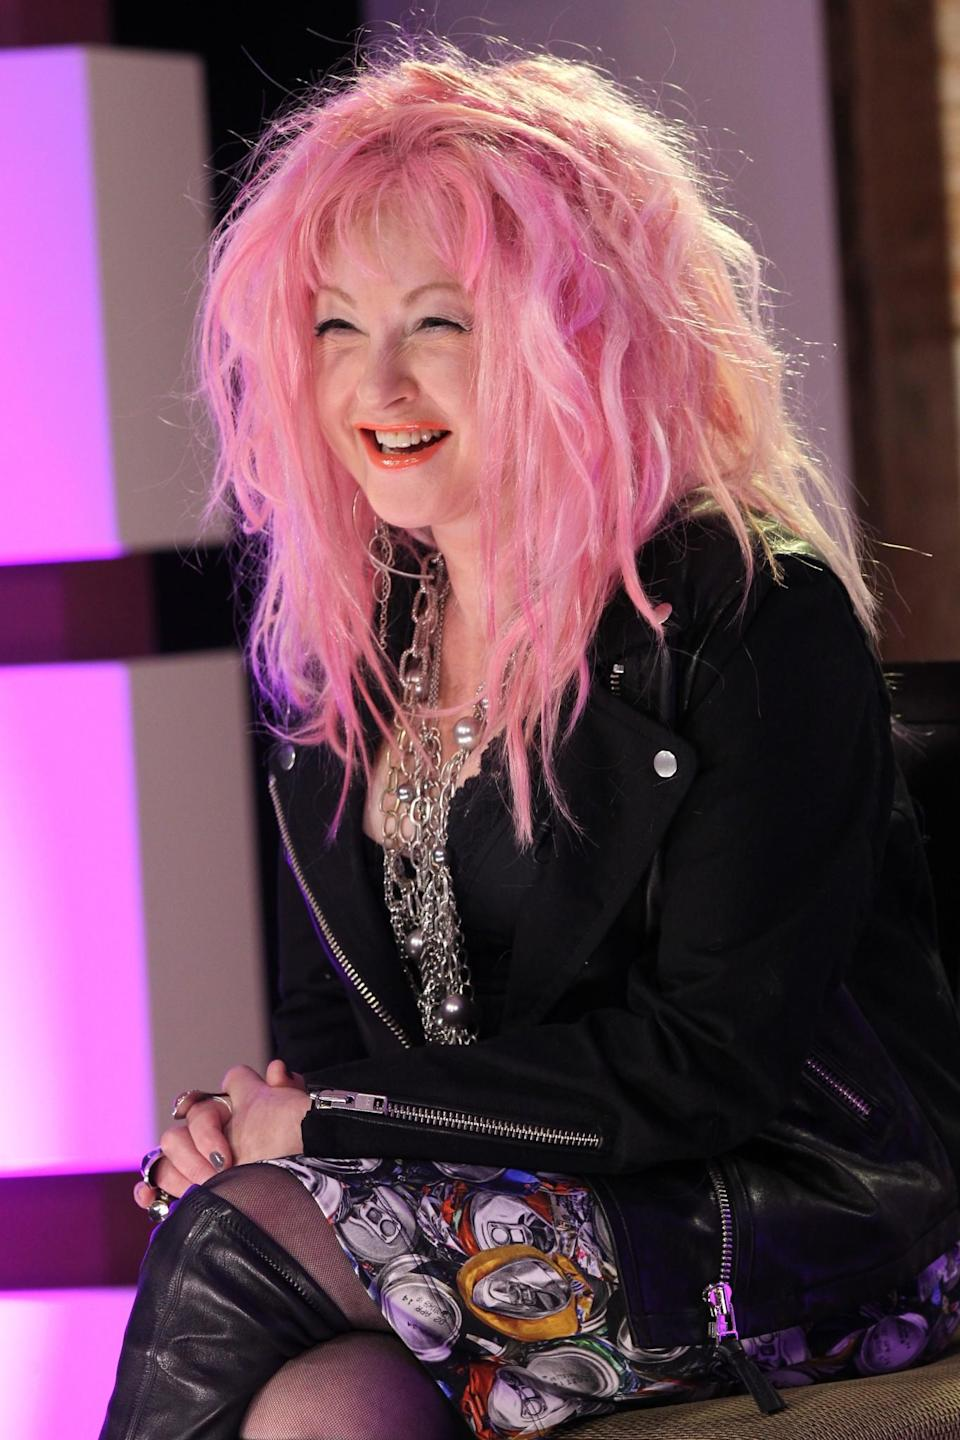 <p>The <i>Girls Just Want to Have Fun</i> singer Cyndi Lauper was the first female winner of the Tony Award for Best Musical. She was given the award in 2013 for her musical, <i>Kinky Boots</i>. Her eclectic style has never wavered (in fact, she's currently sporting a wild pink do), ensuring she will forever be remembered as a musical icon. <i>[Photo: Getty]</i> </p>